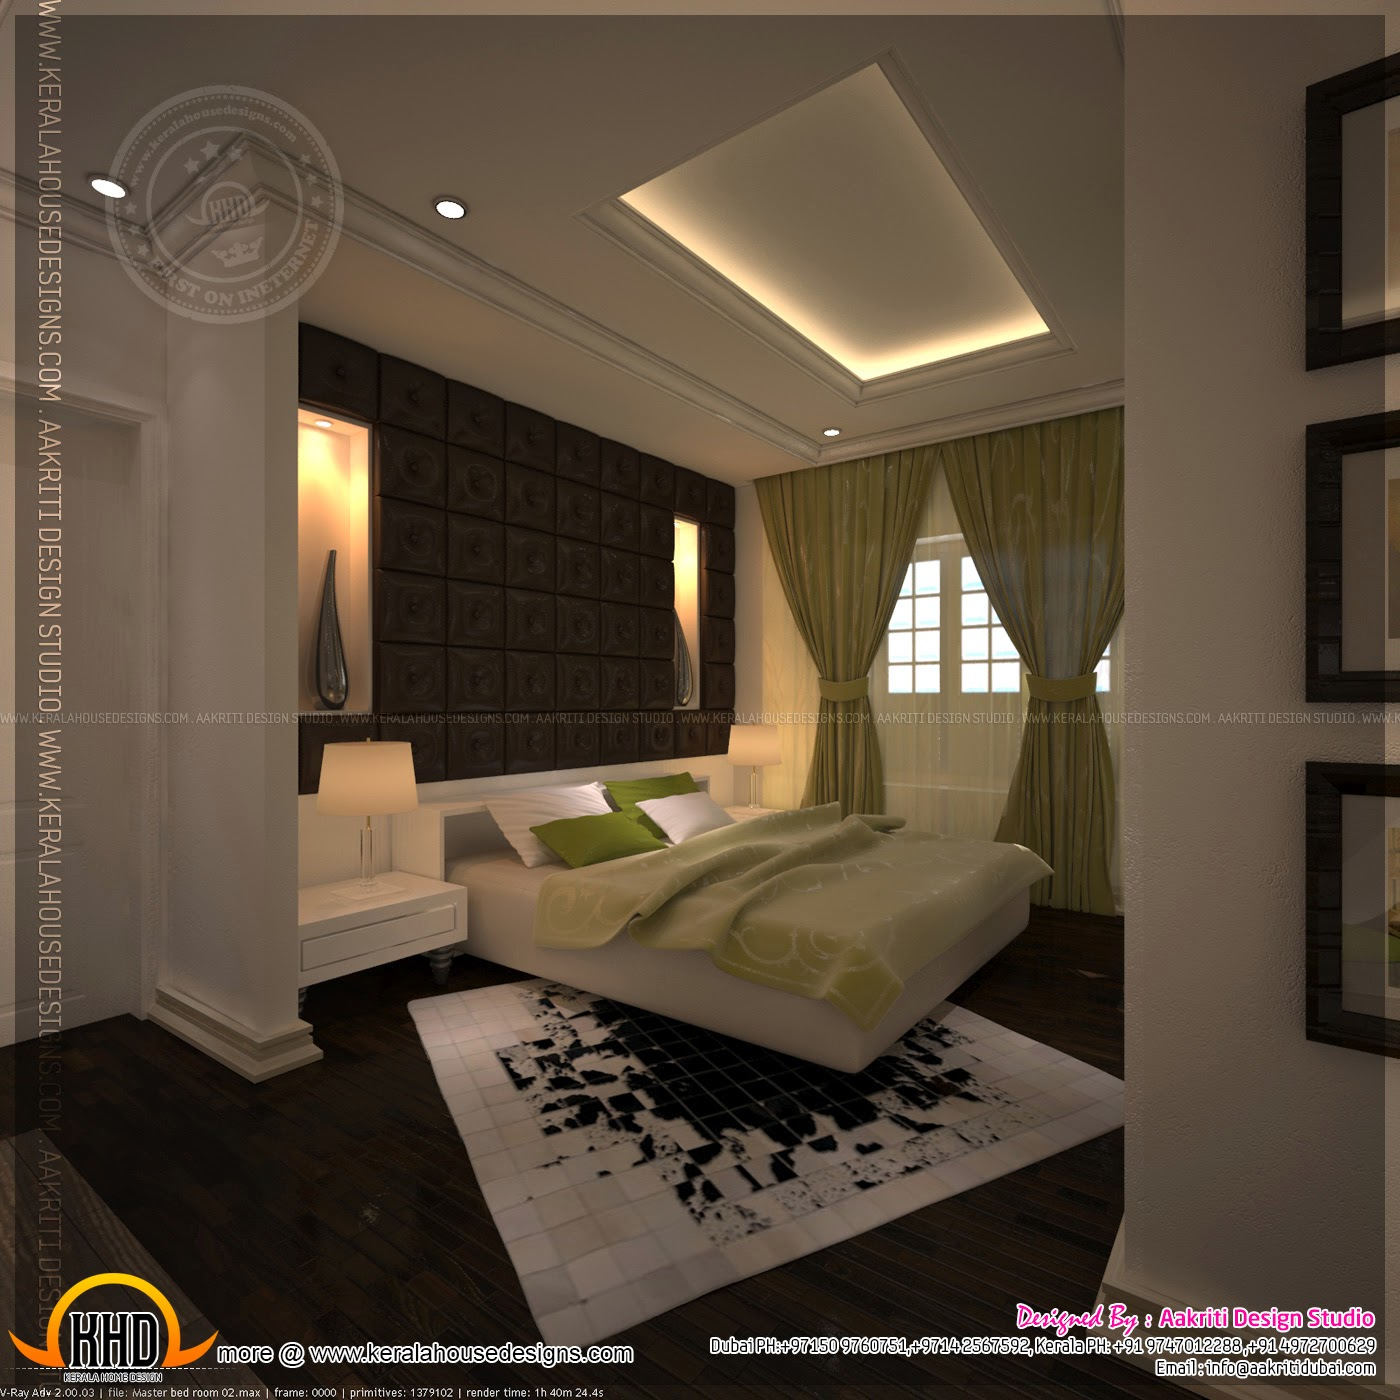 Master bedroom and bathroom interior design kerala home for Bedroom interior design images